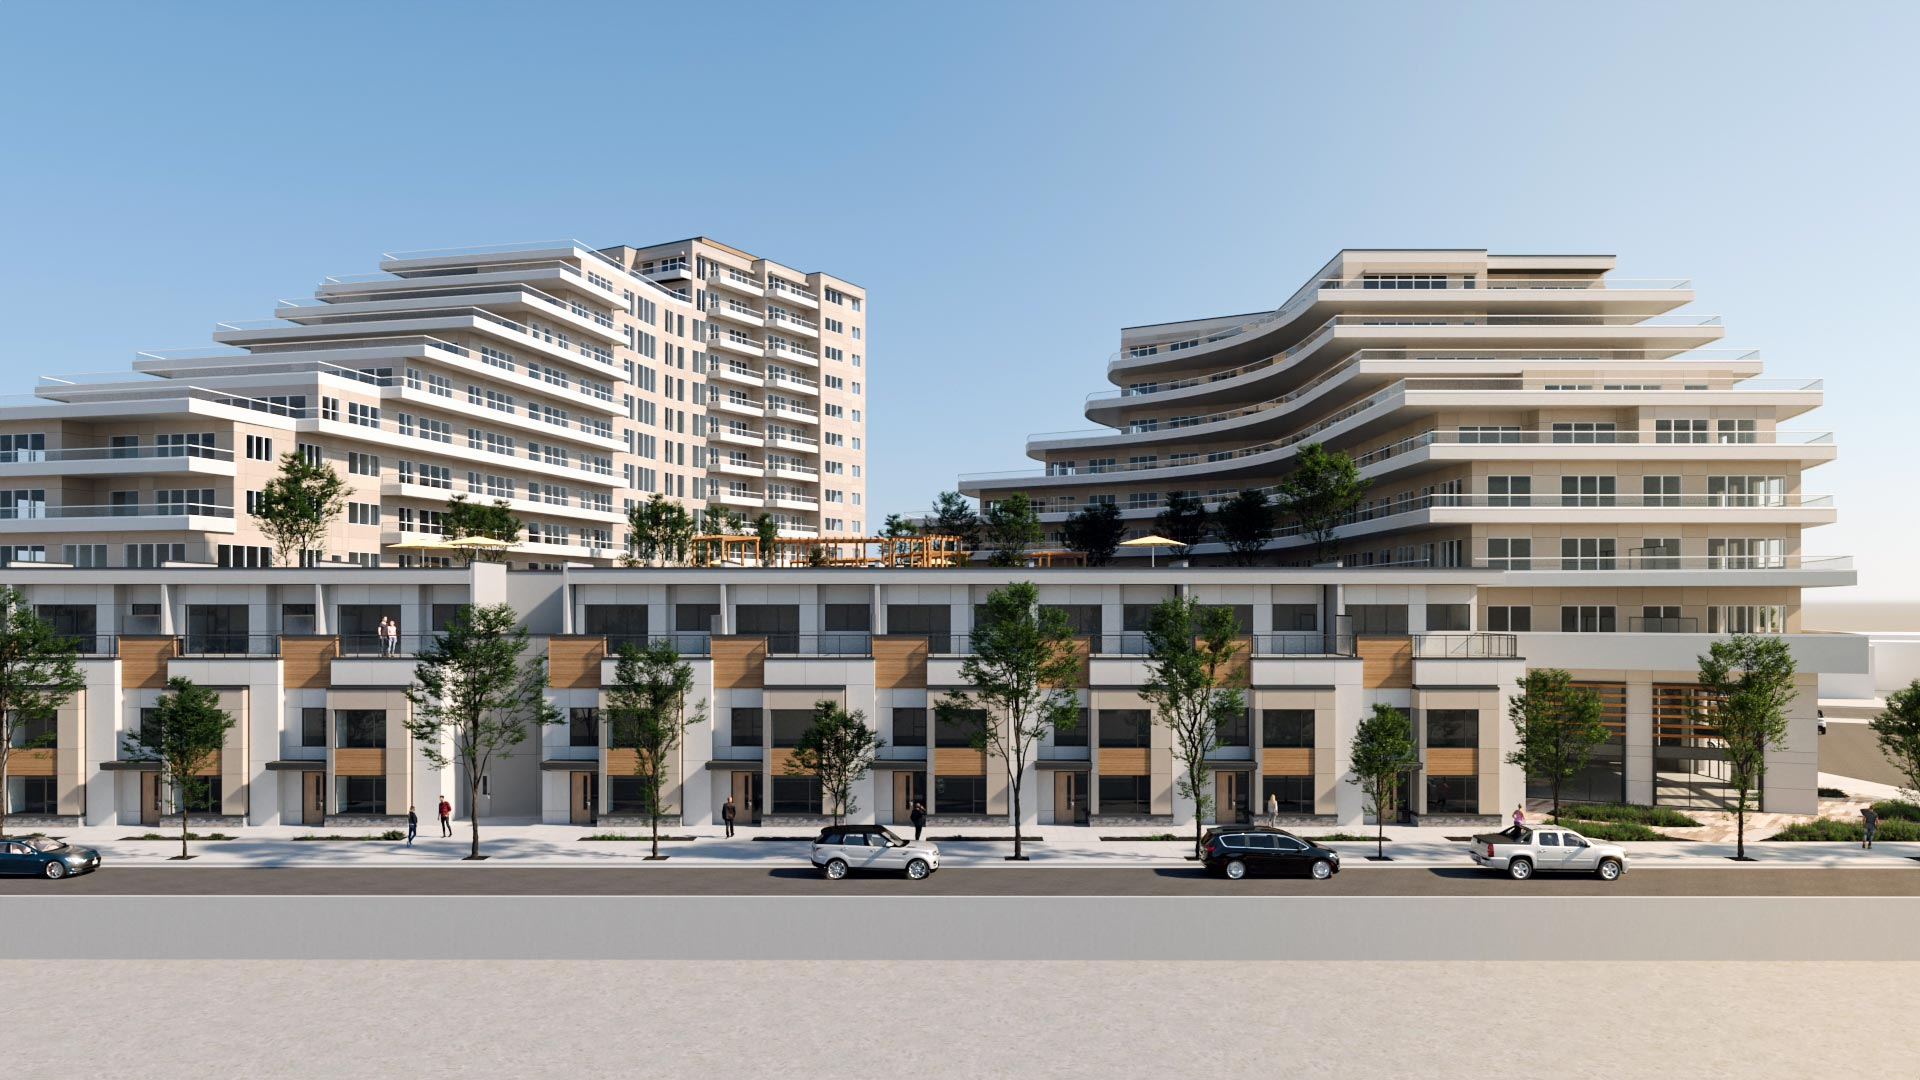 Stober Group Applauded for Unique, World Class Design of Lakeshore Road Development